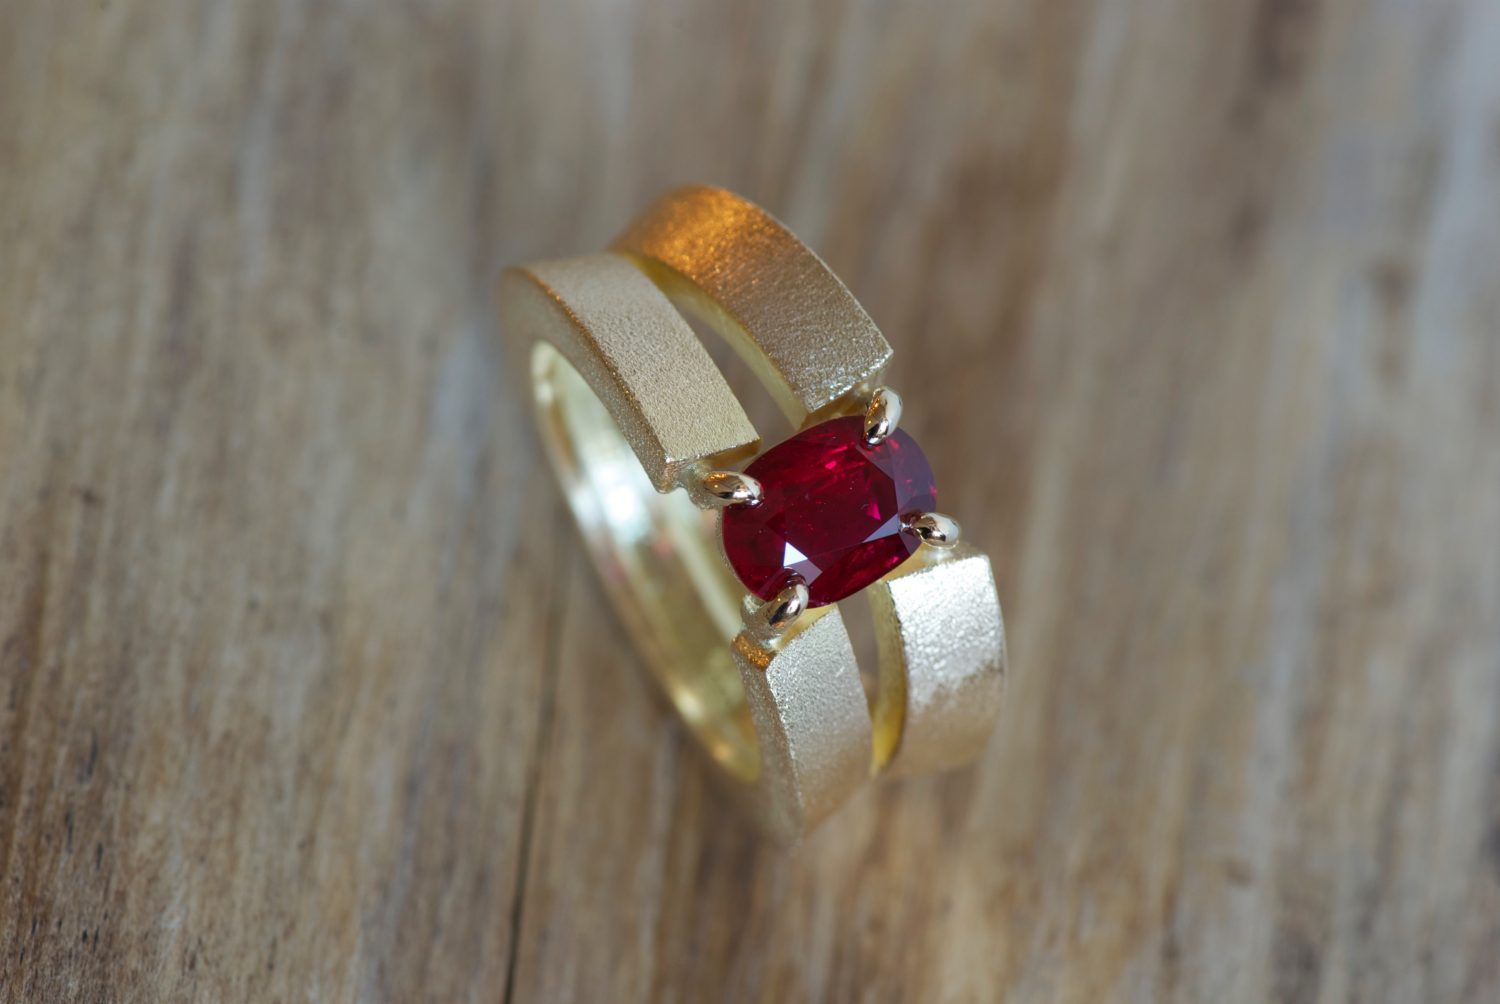 Bague Pop. Or jaune et rubis de Birmanie.